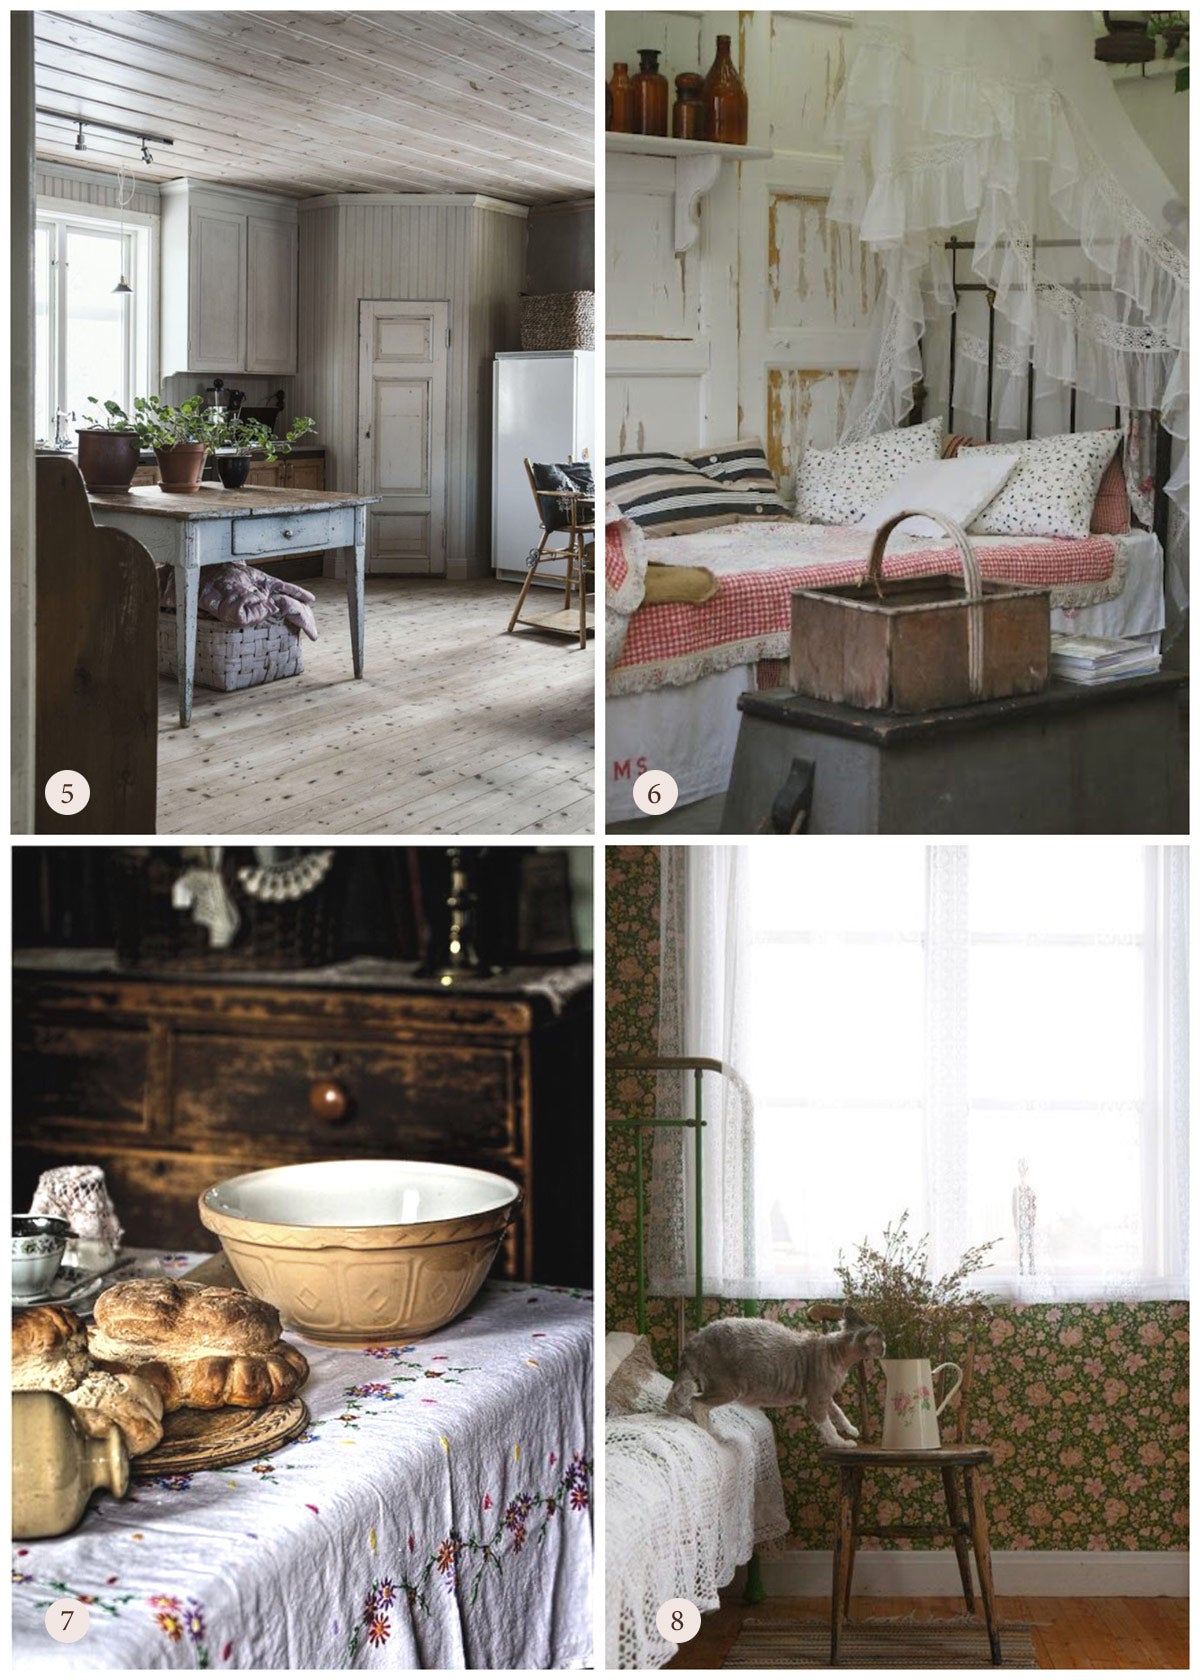 Romantic Country Home Inspiration and Decorating Ideas